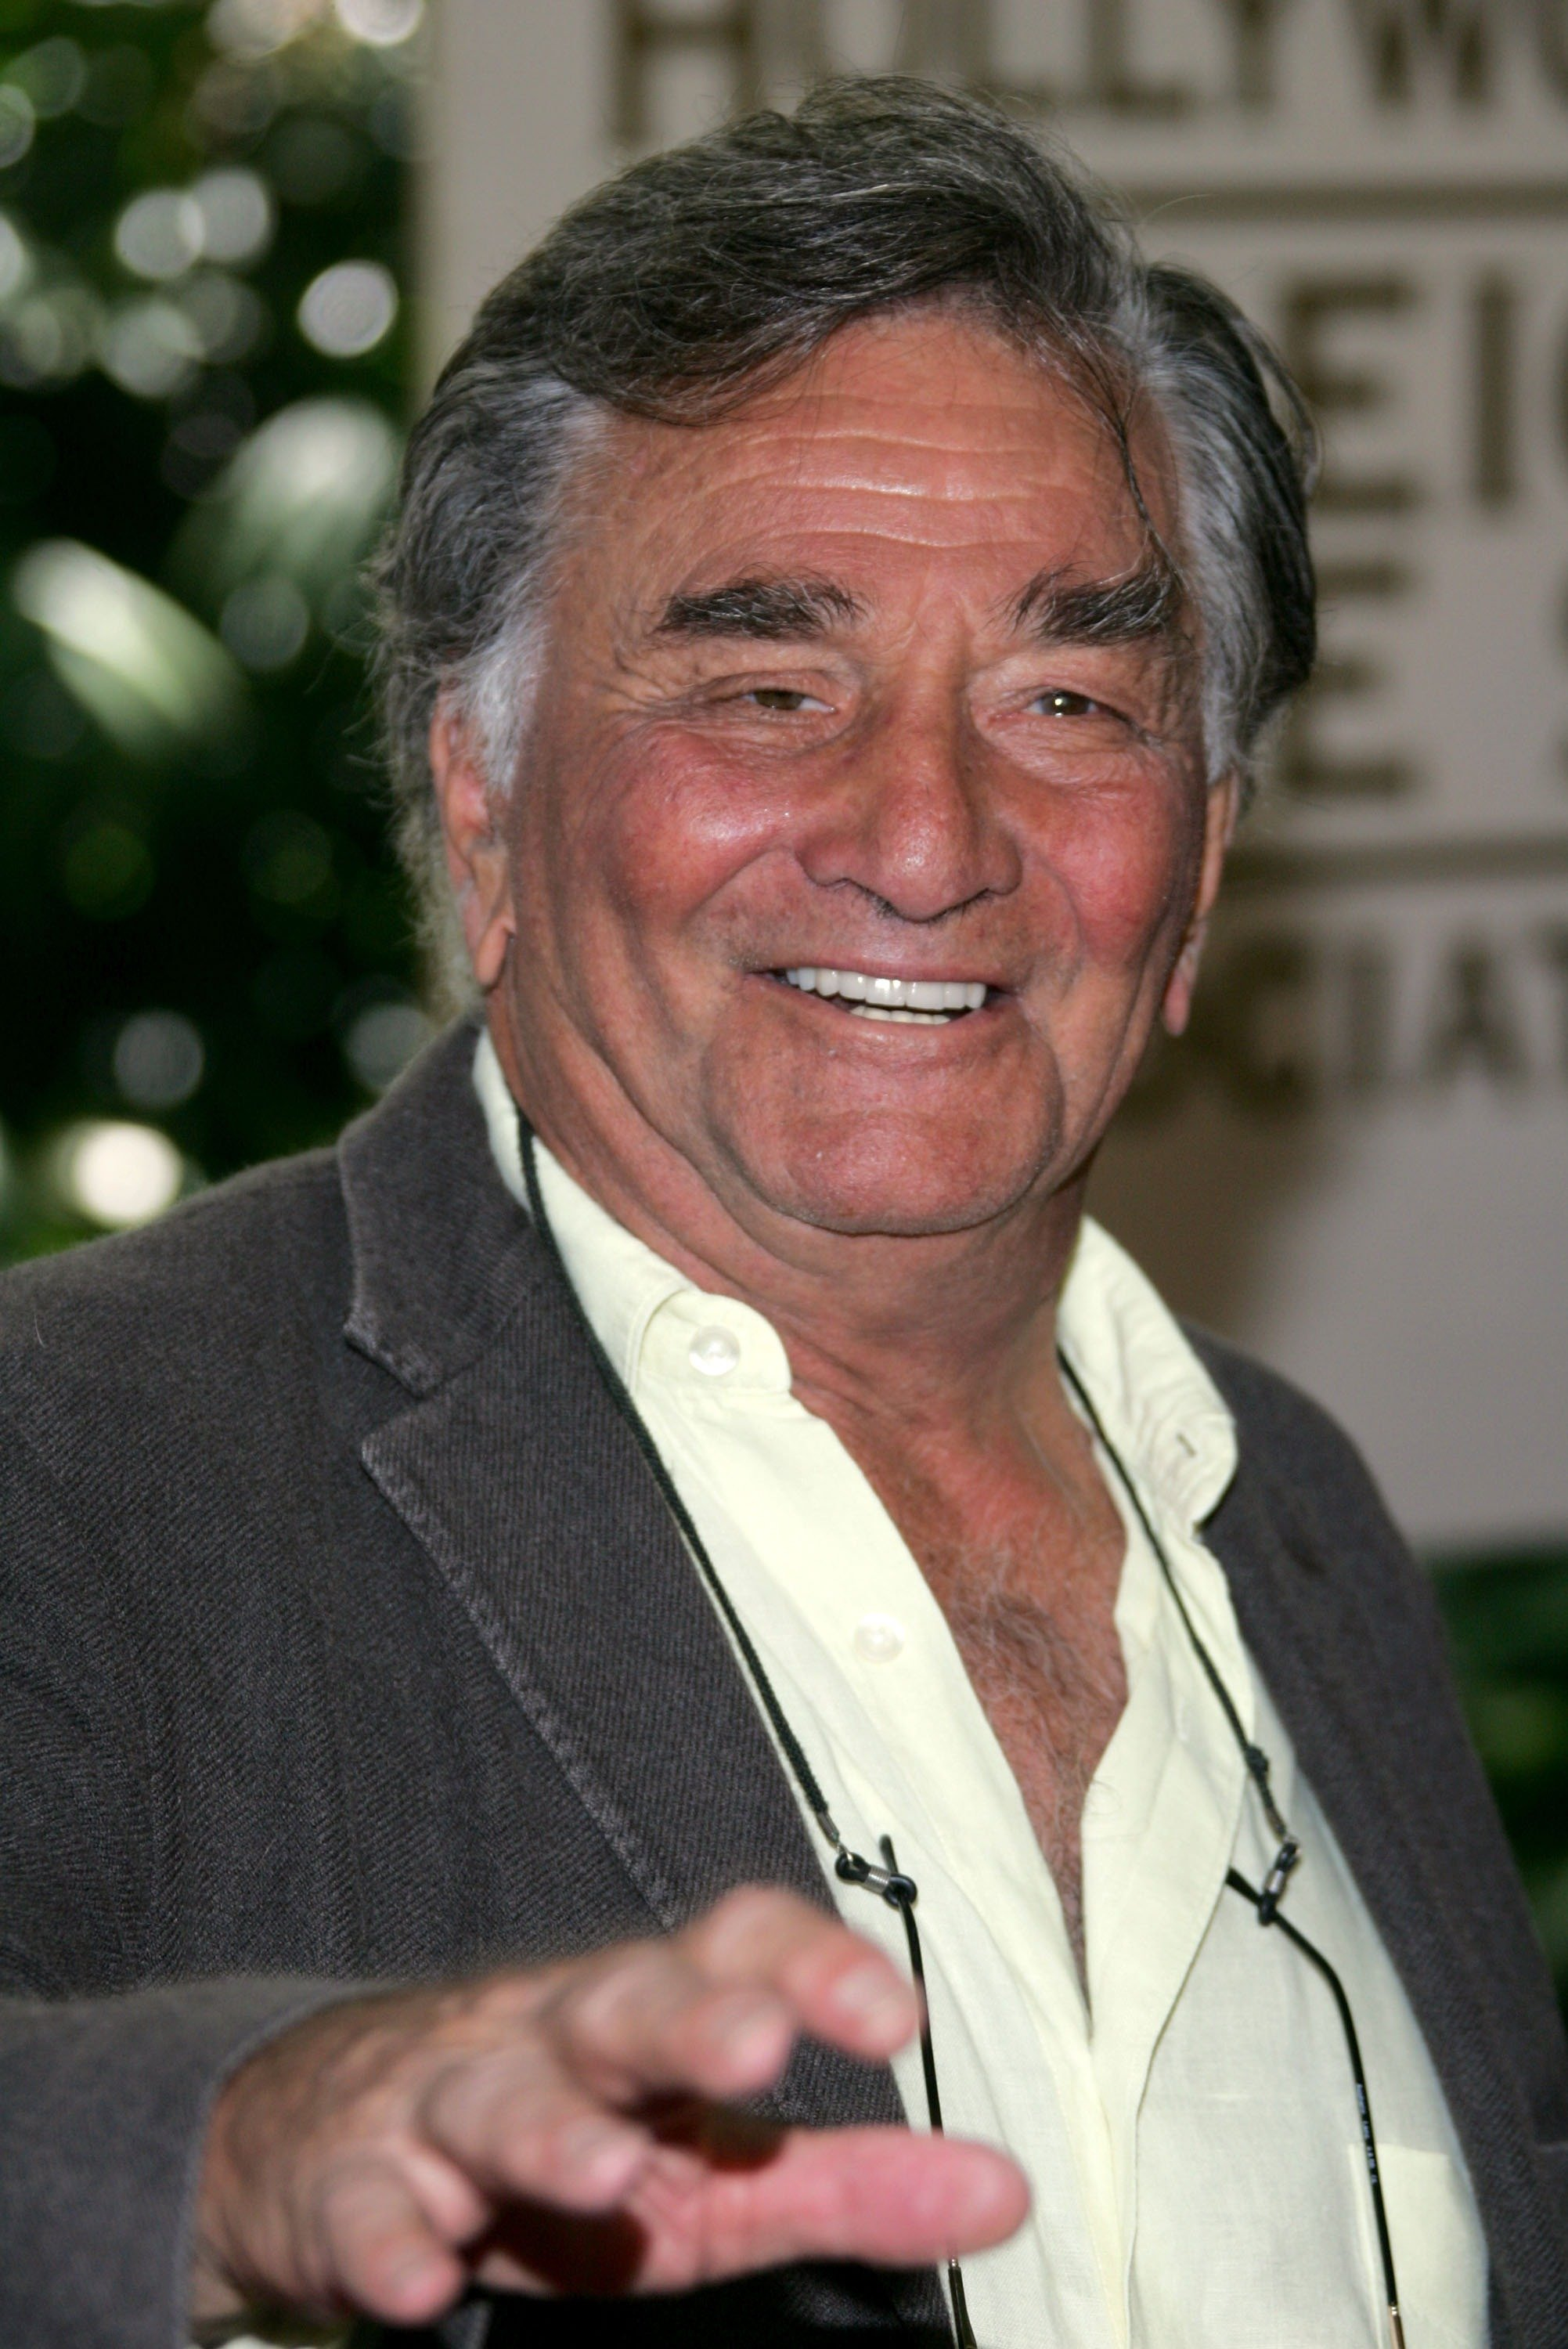 Peter Falk on August 9, 2007, in Beverly Hills, California. | Source: Getty Images.